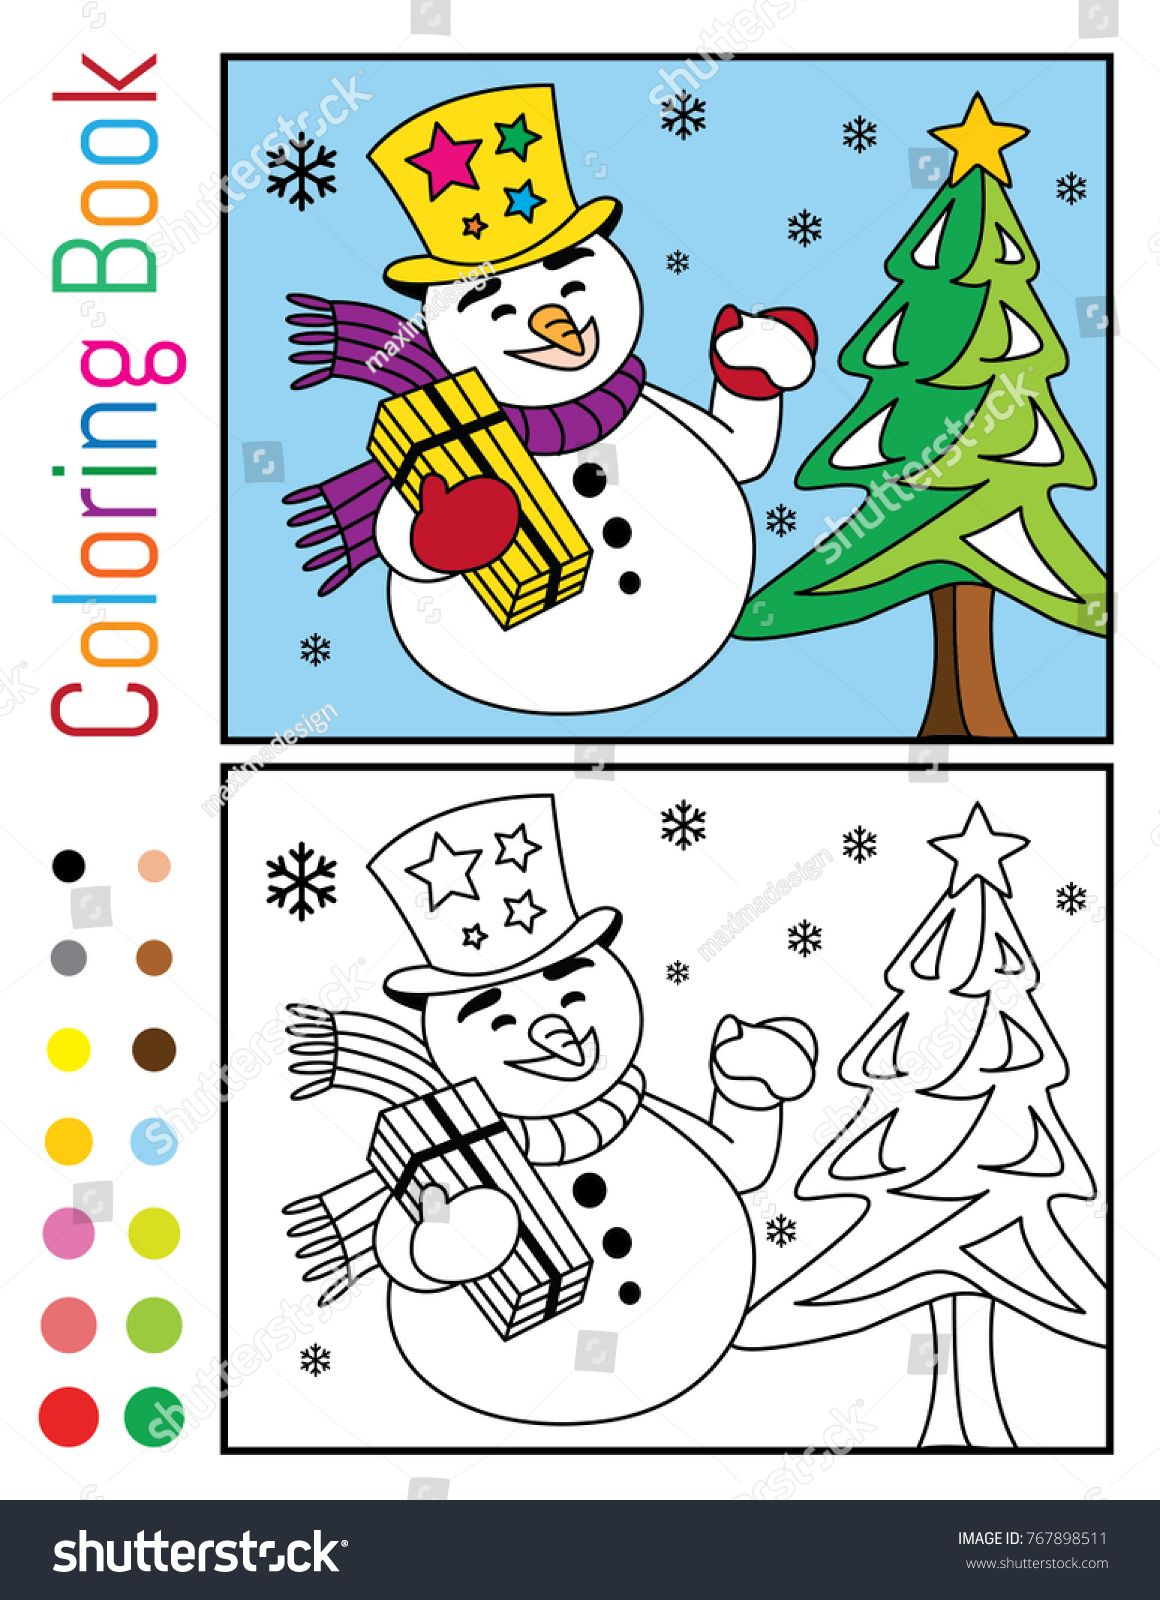 snowman with gift and christmas tree coloring book vector illustration